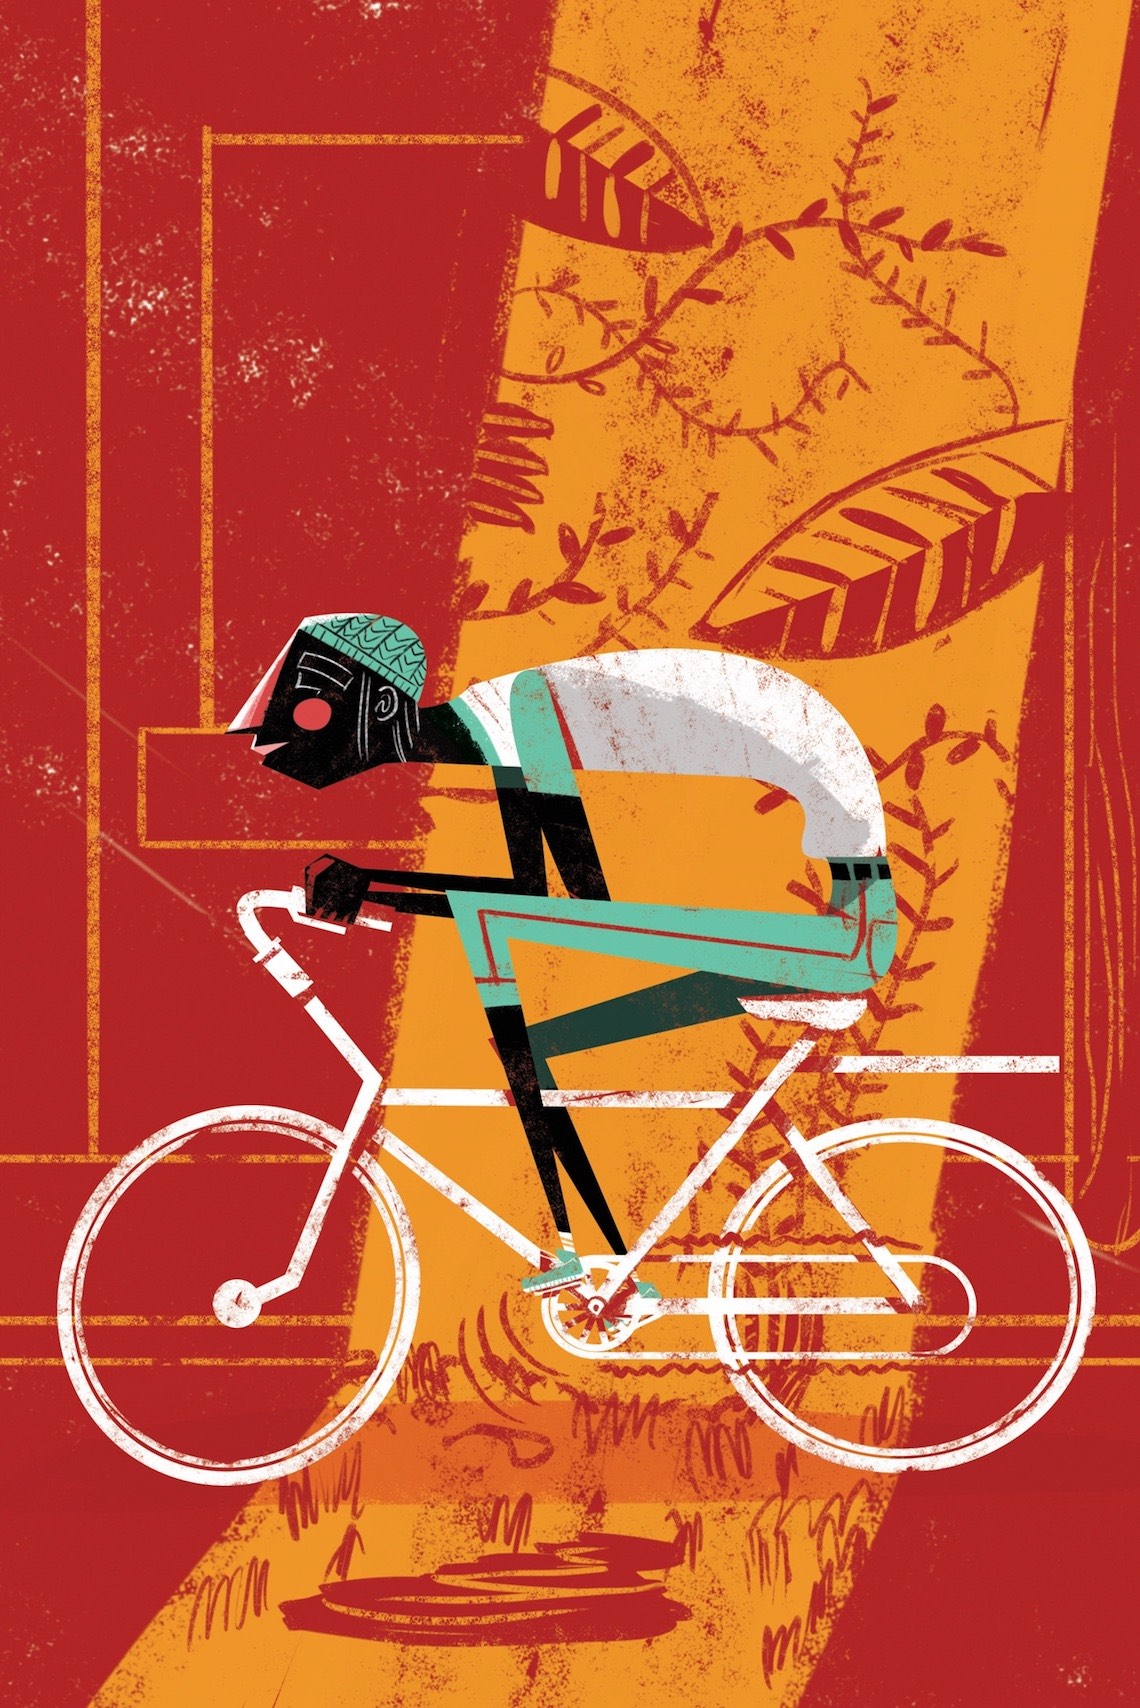 Guillo Castellanos Illustrazioni_Bike_Mèxico_urbancycling_2